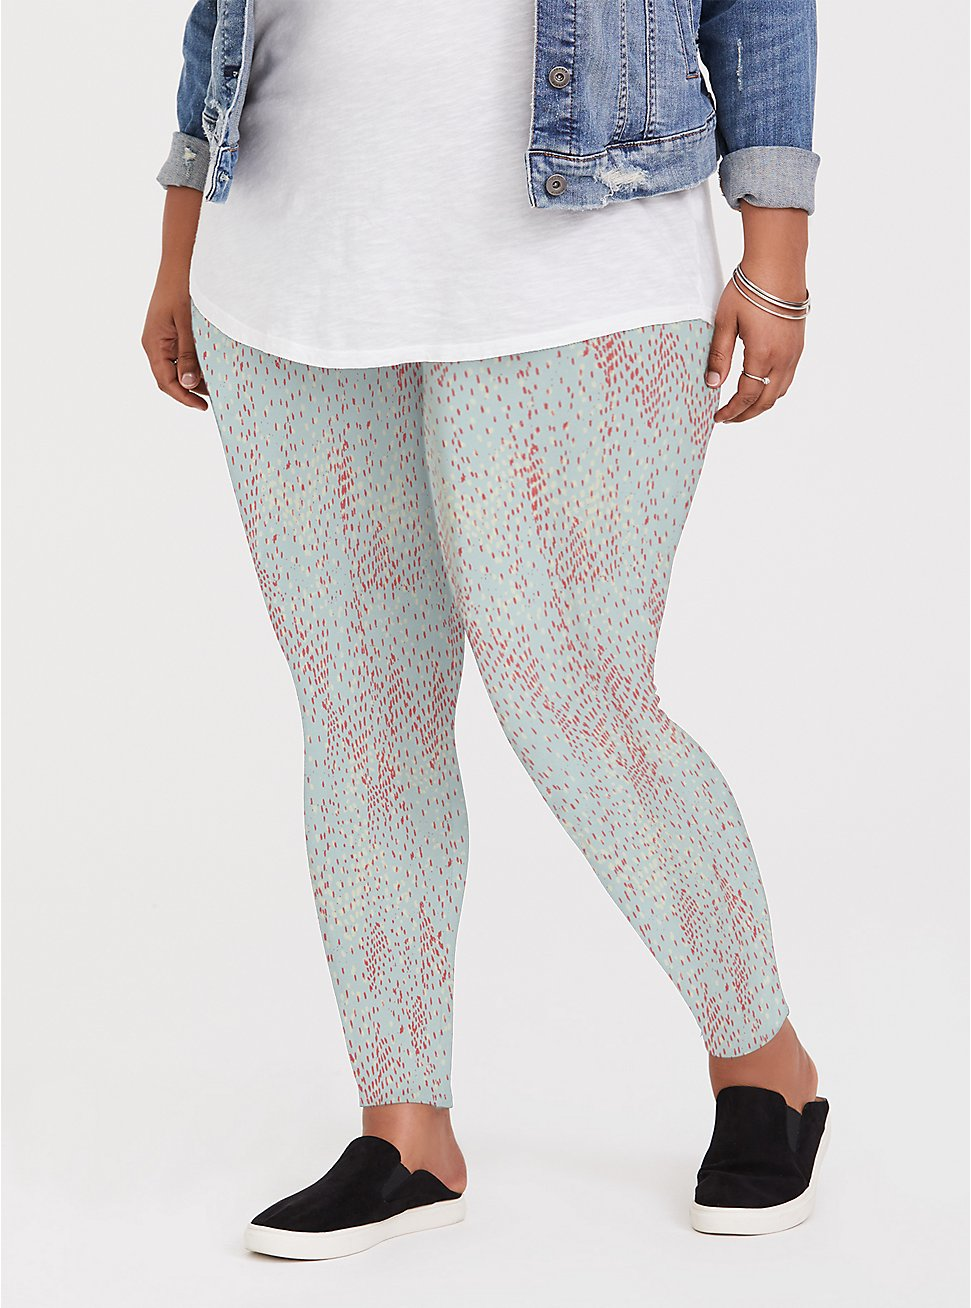 Plus Size Premium Legging - Multi Dots & Mint Blue , GREY, hi-res